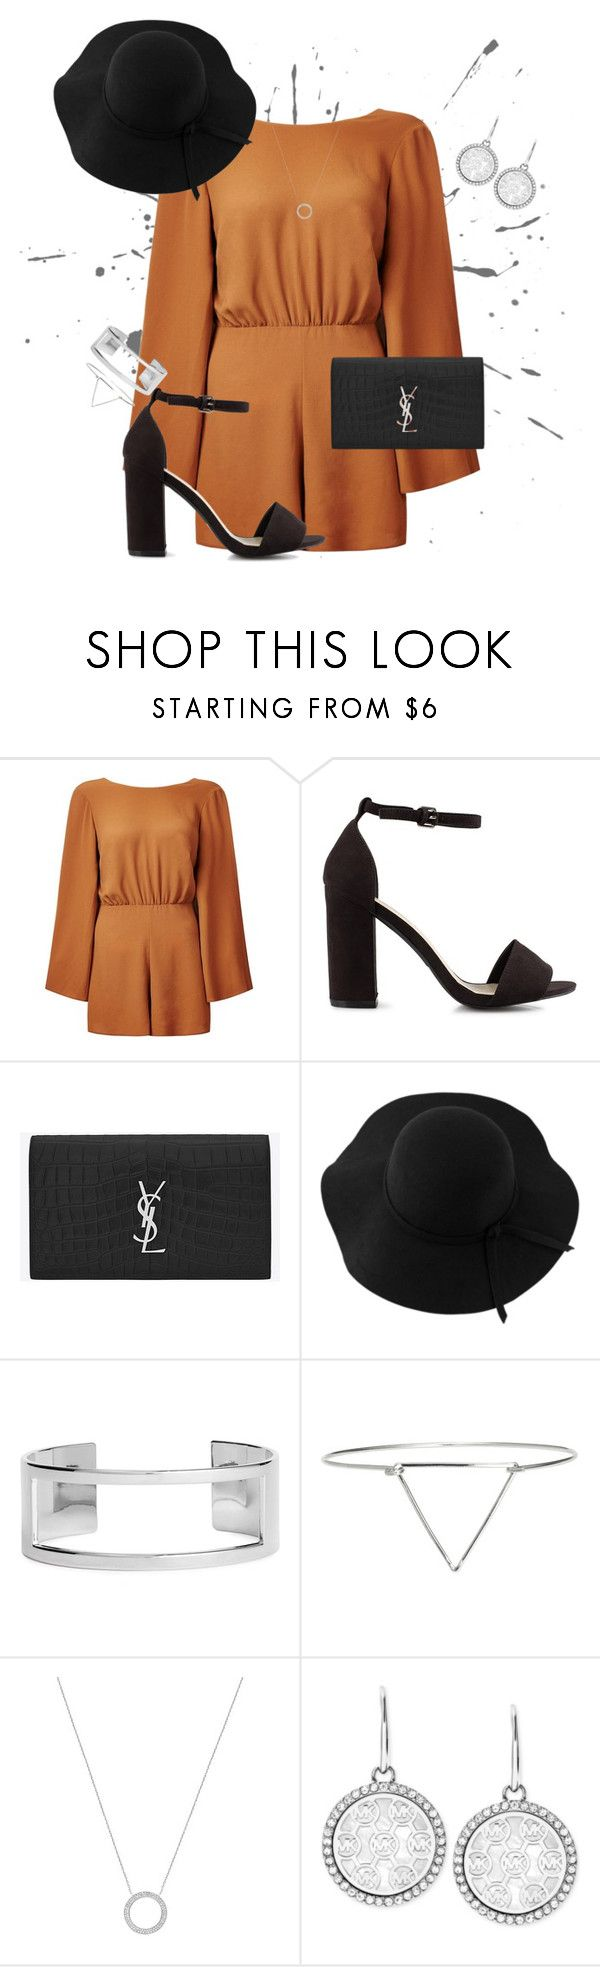 """""""SB-2016"""" by louisesandstroms on Polyvore featuring New Look, Nly Shoes, Yves Saint Laurent, Sans Souci, H&M and Michael Kors"""